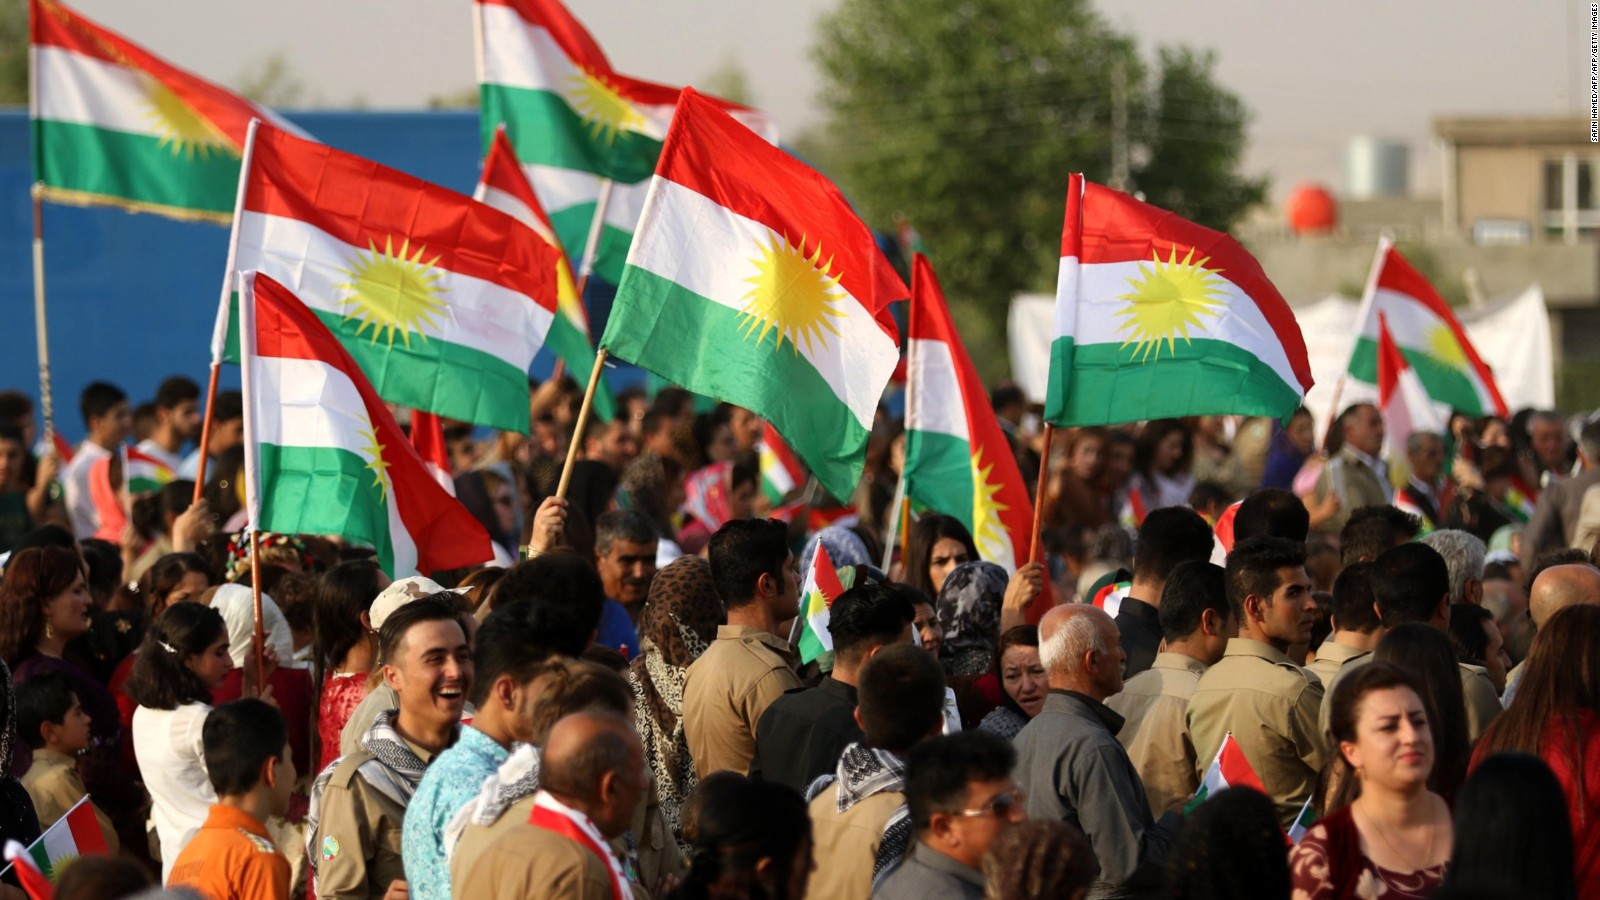 Who are the Kurds?